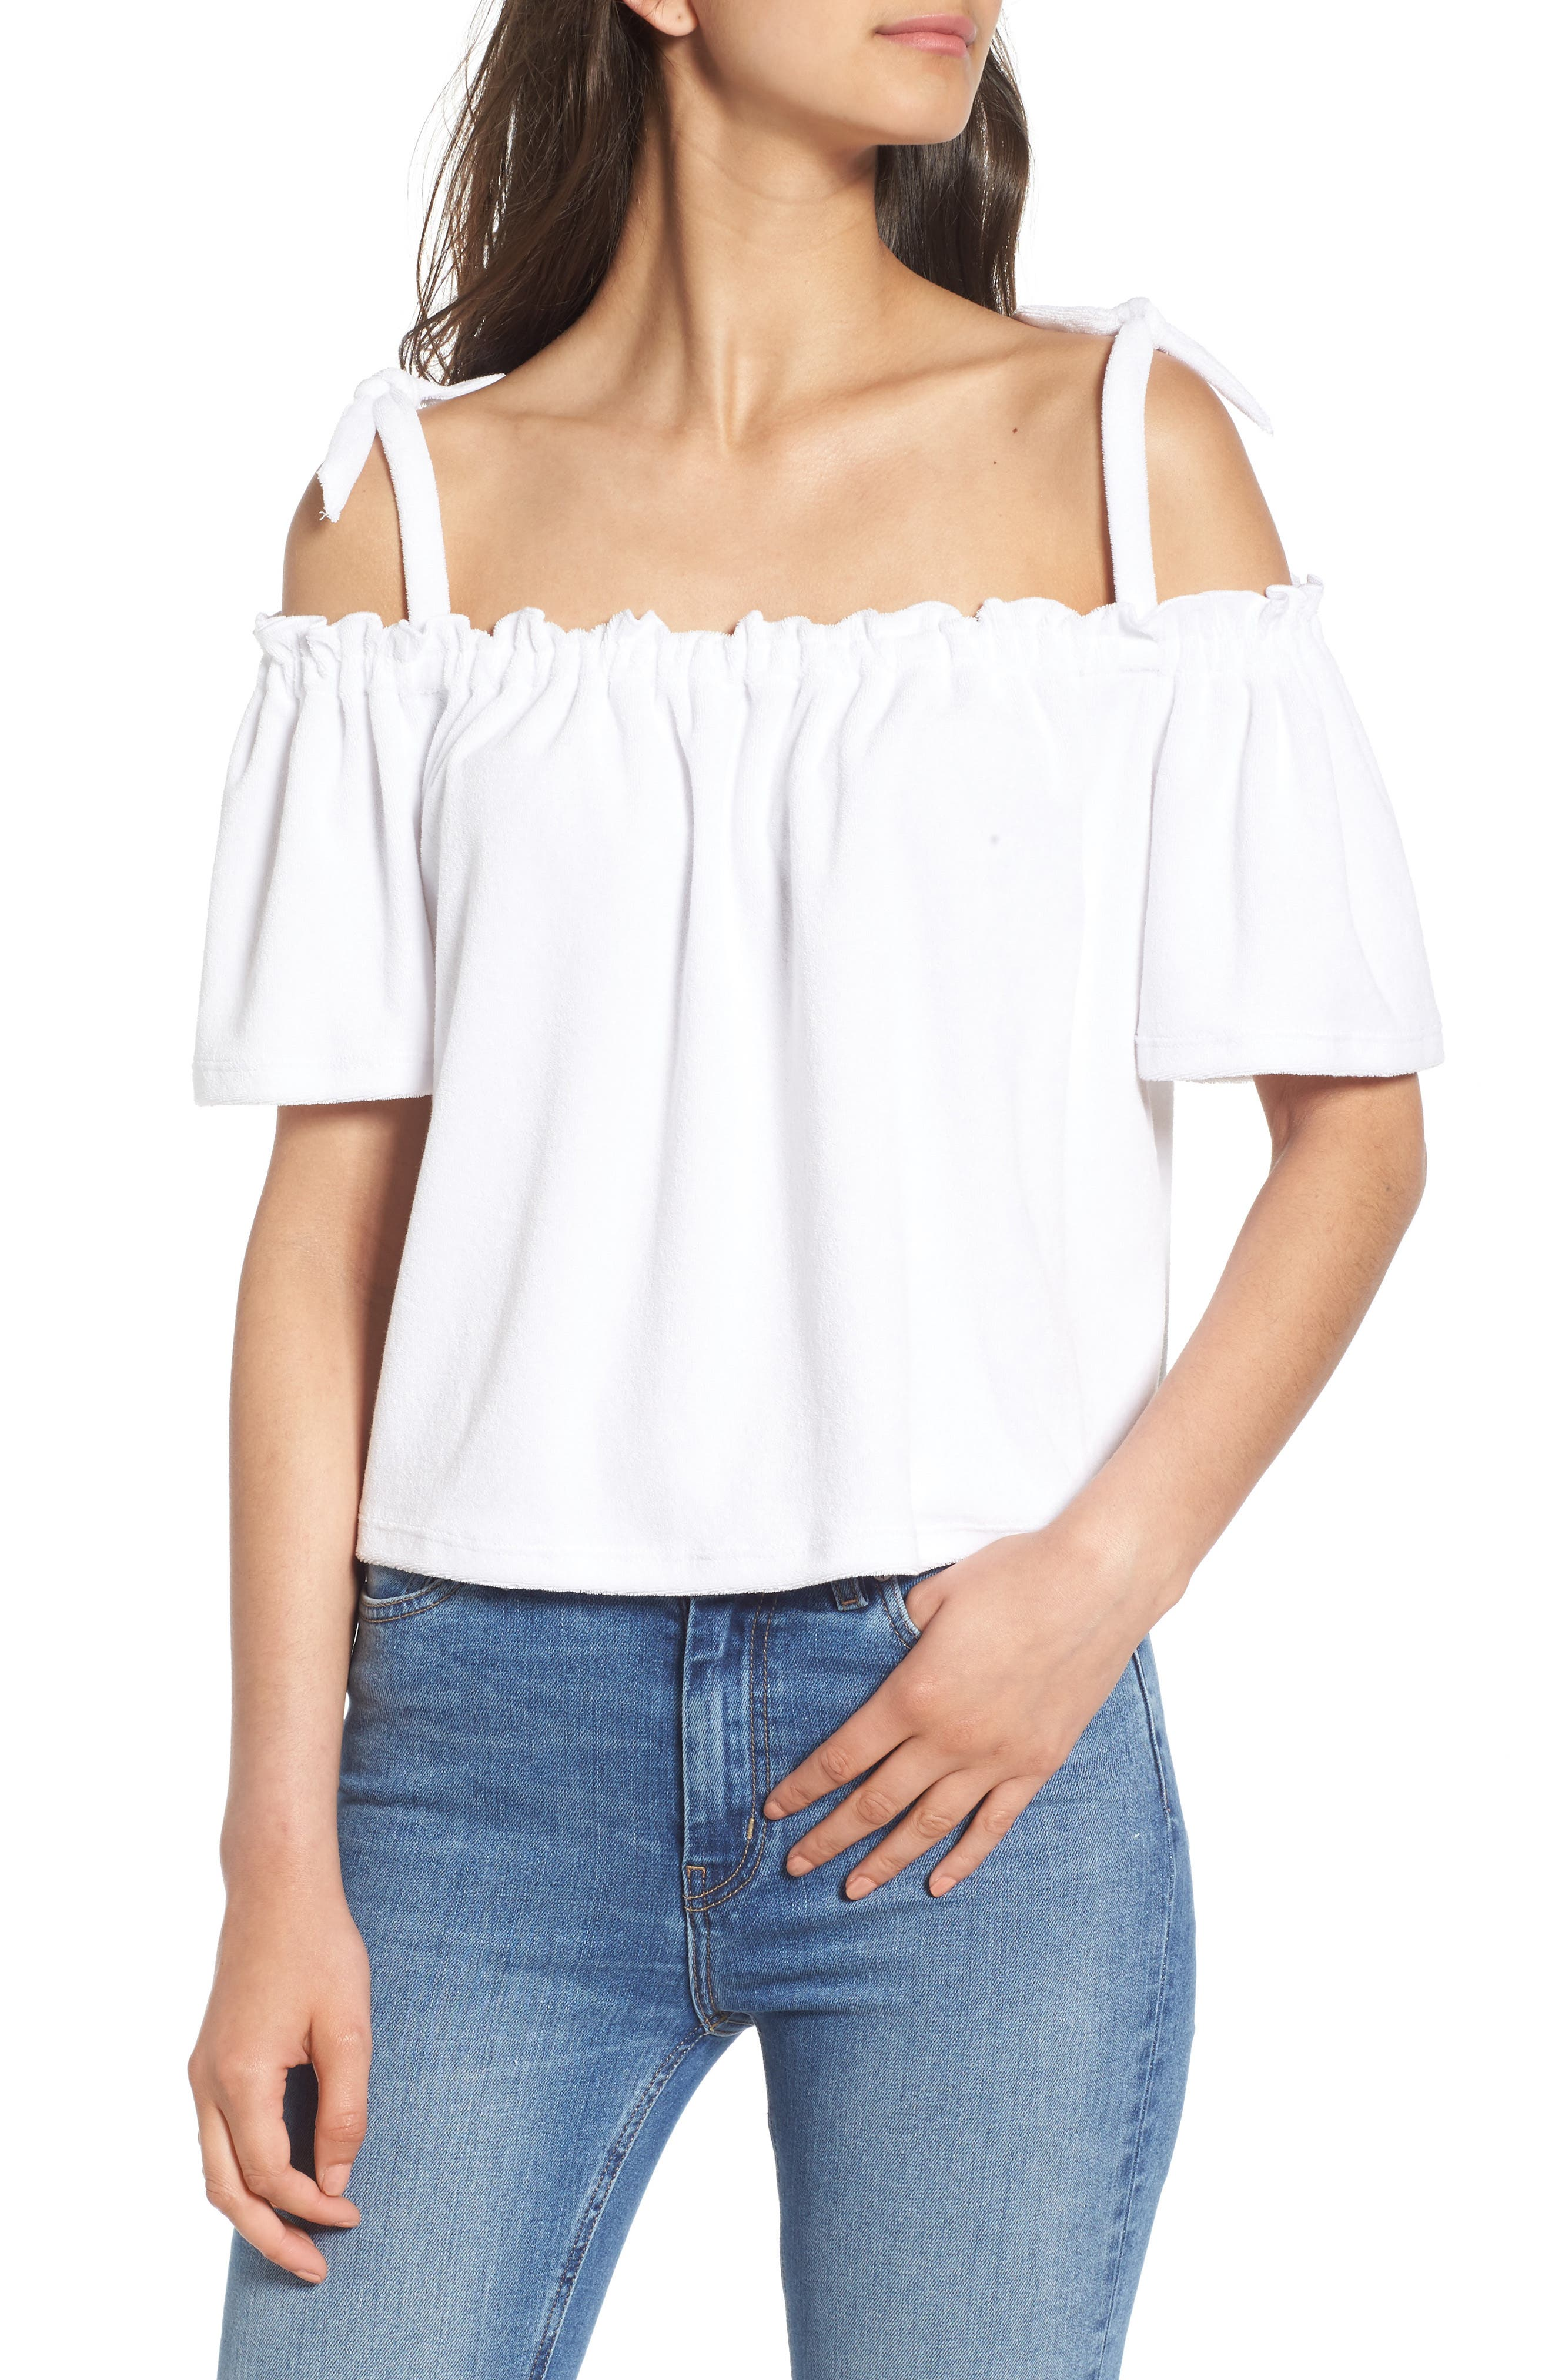 Main Image - Juicy Couture Venice Beach Microterry Off the Shoulder Top